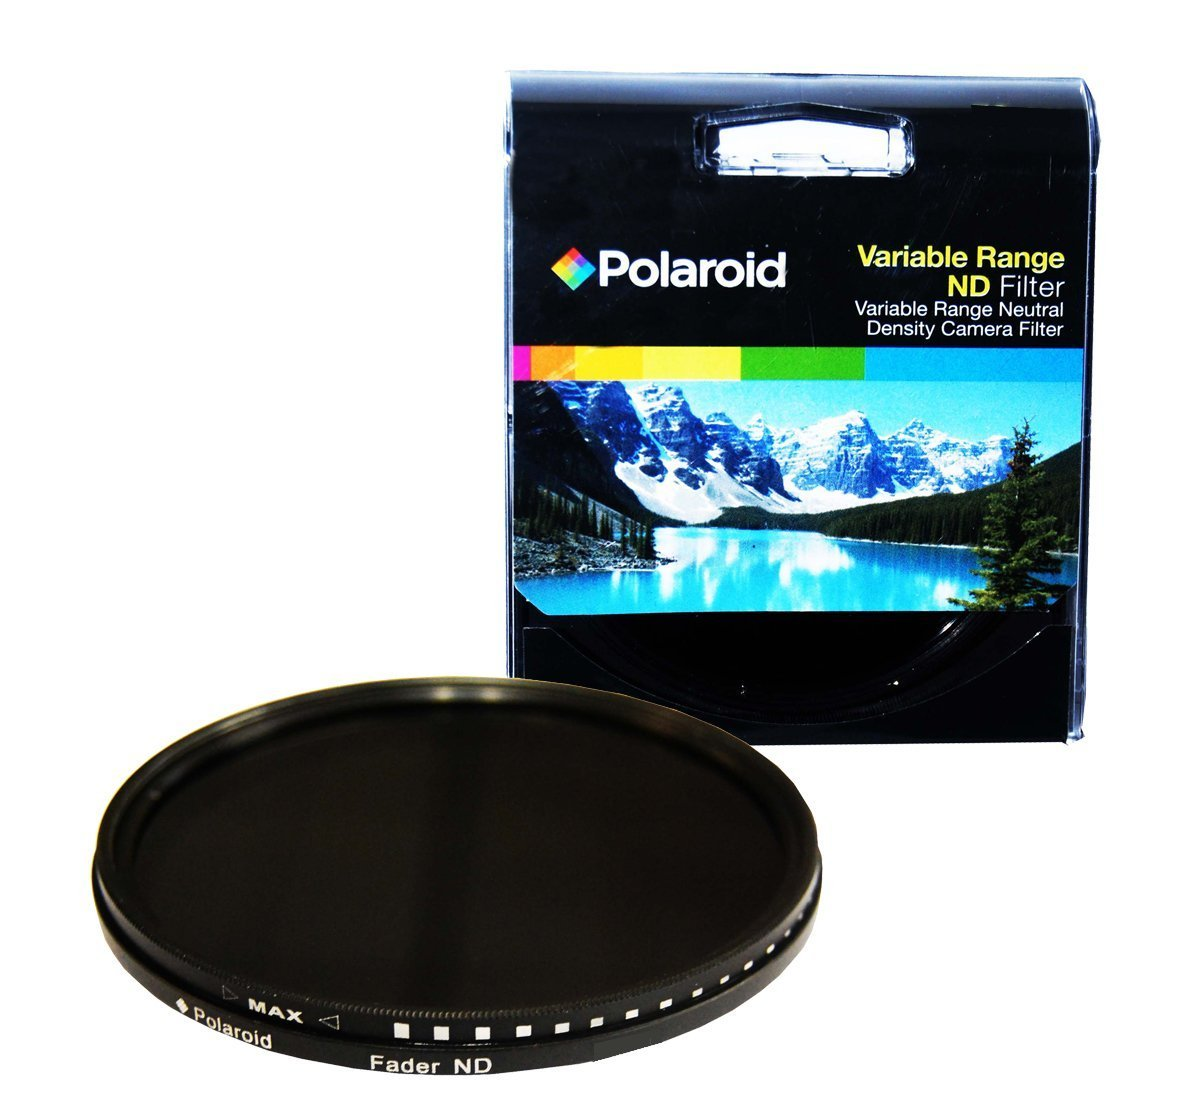 Polaroid Optics 77mm HD Multi-Coated Variable Range (ND3, ND6, ND9, ND16, ND32, ND400) Neutral Density (ND) Fader Filter - 6 Filters in 1!